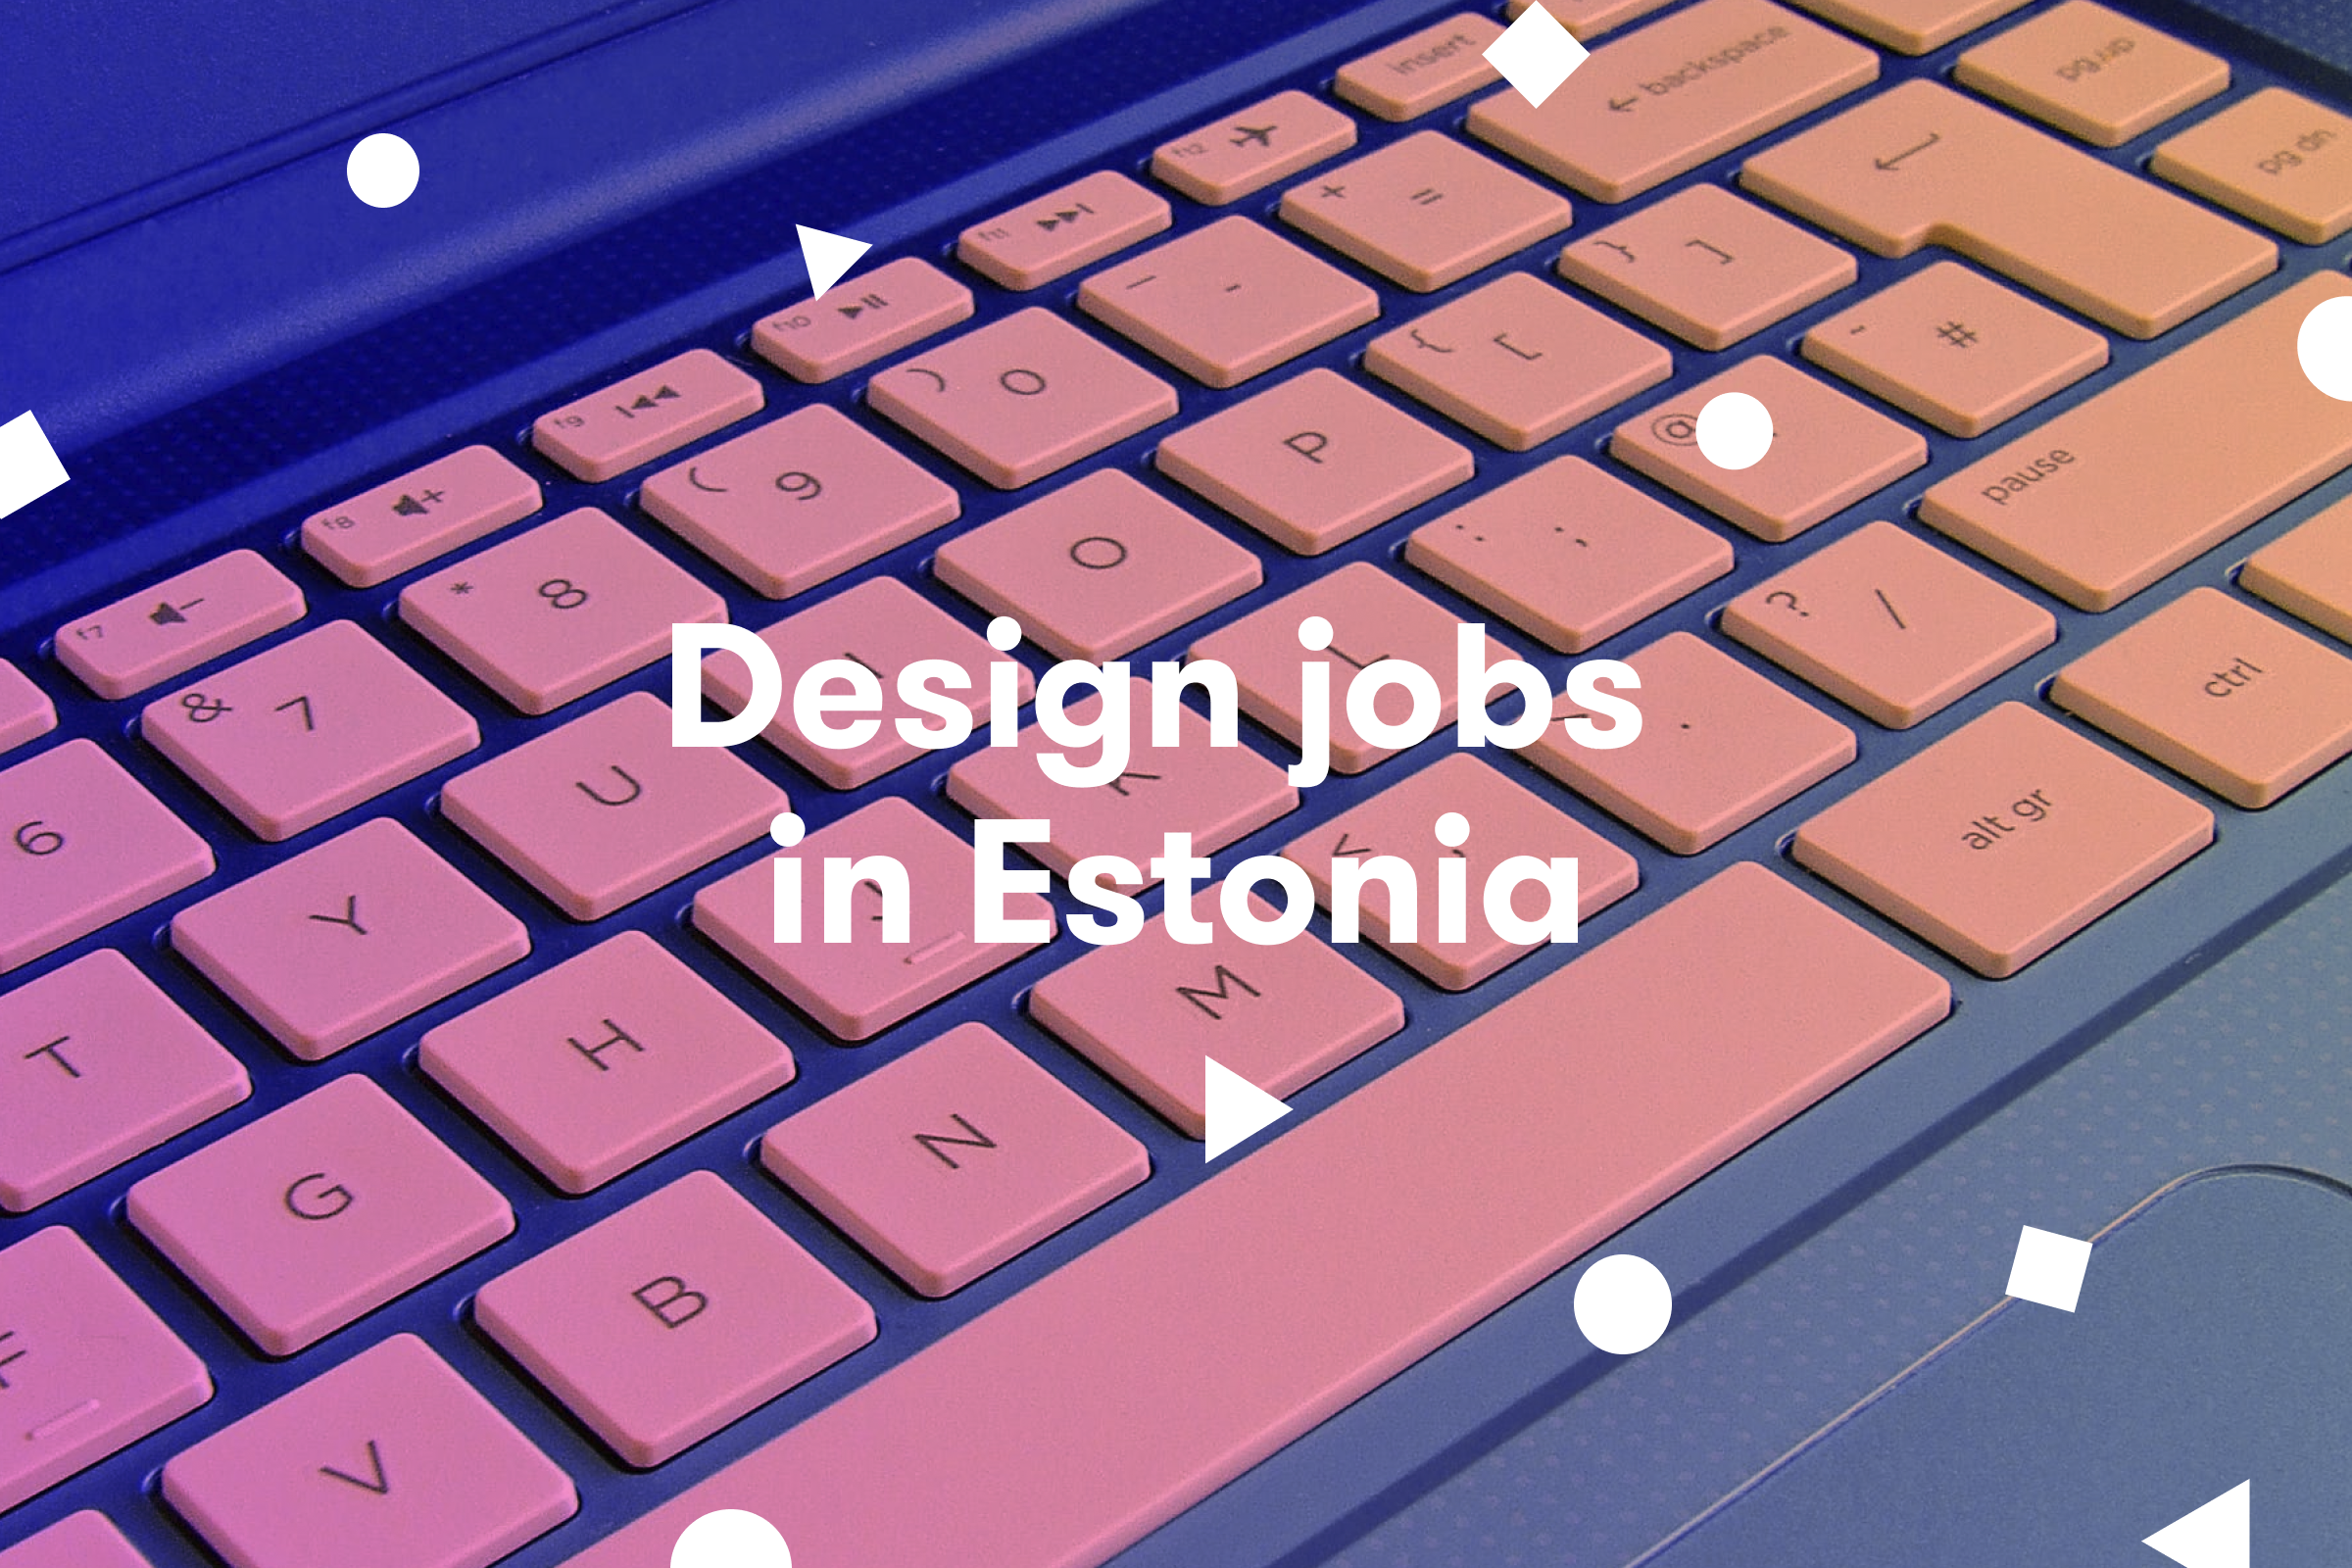 design jobs in estonia